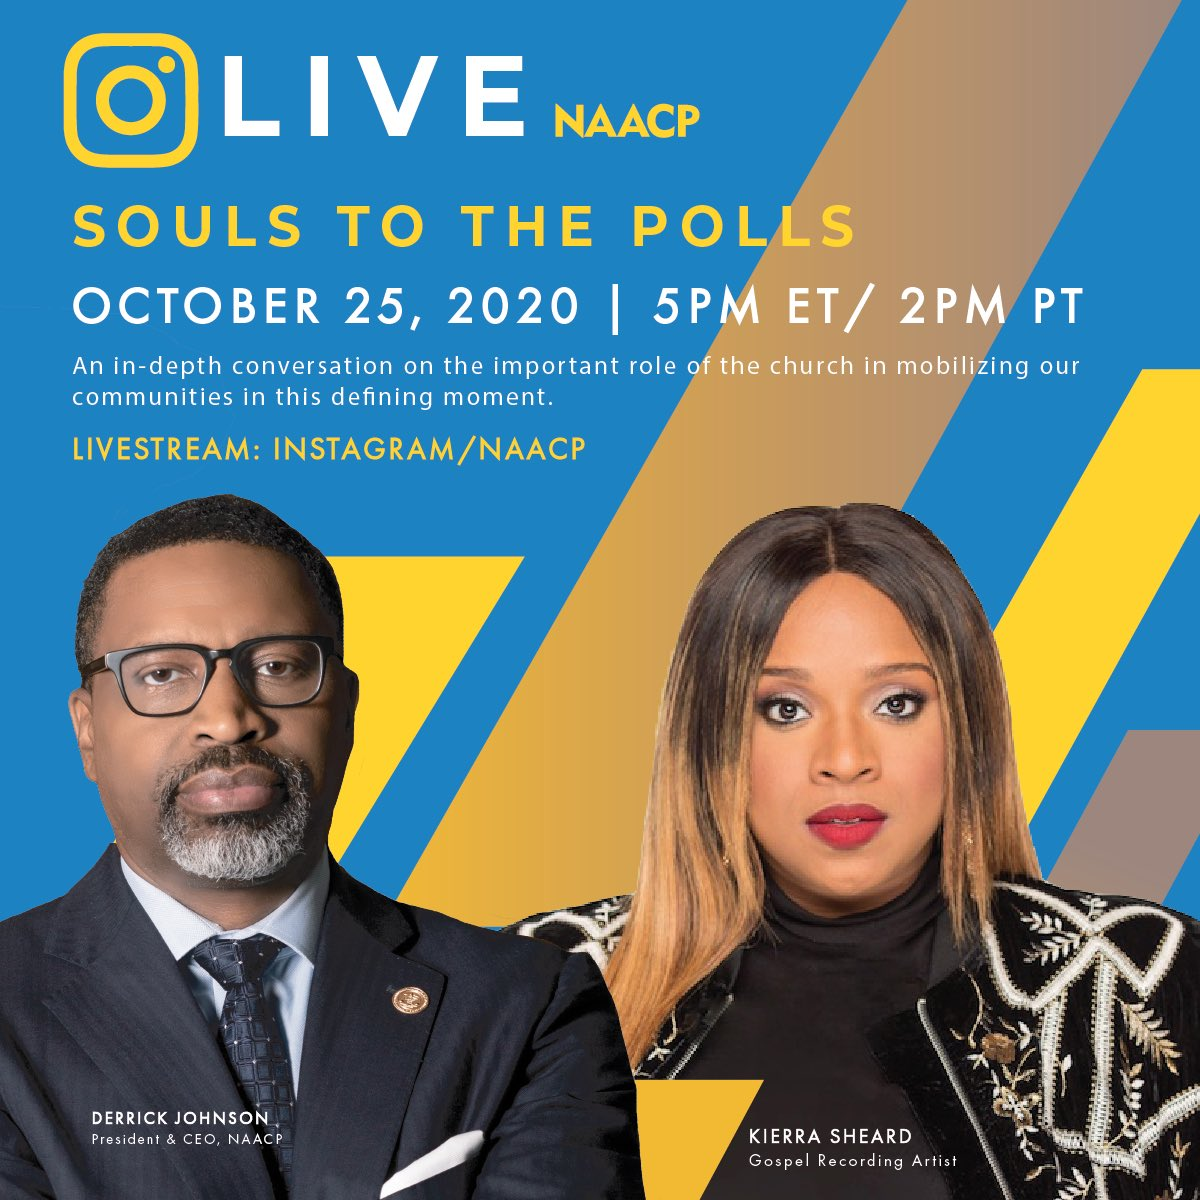 Tune in tomorrow as President @derricknaacp goes live on IG w/ @kierrasheard to discuss #SoulstothePolls and the importance of the #BlackVote. #2020Election https://t.co/bAbk3hmDI2